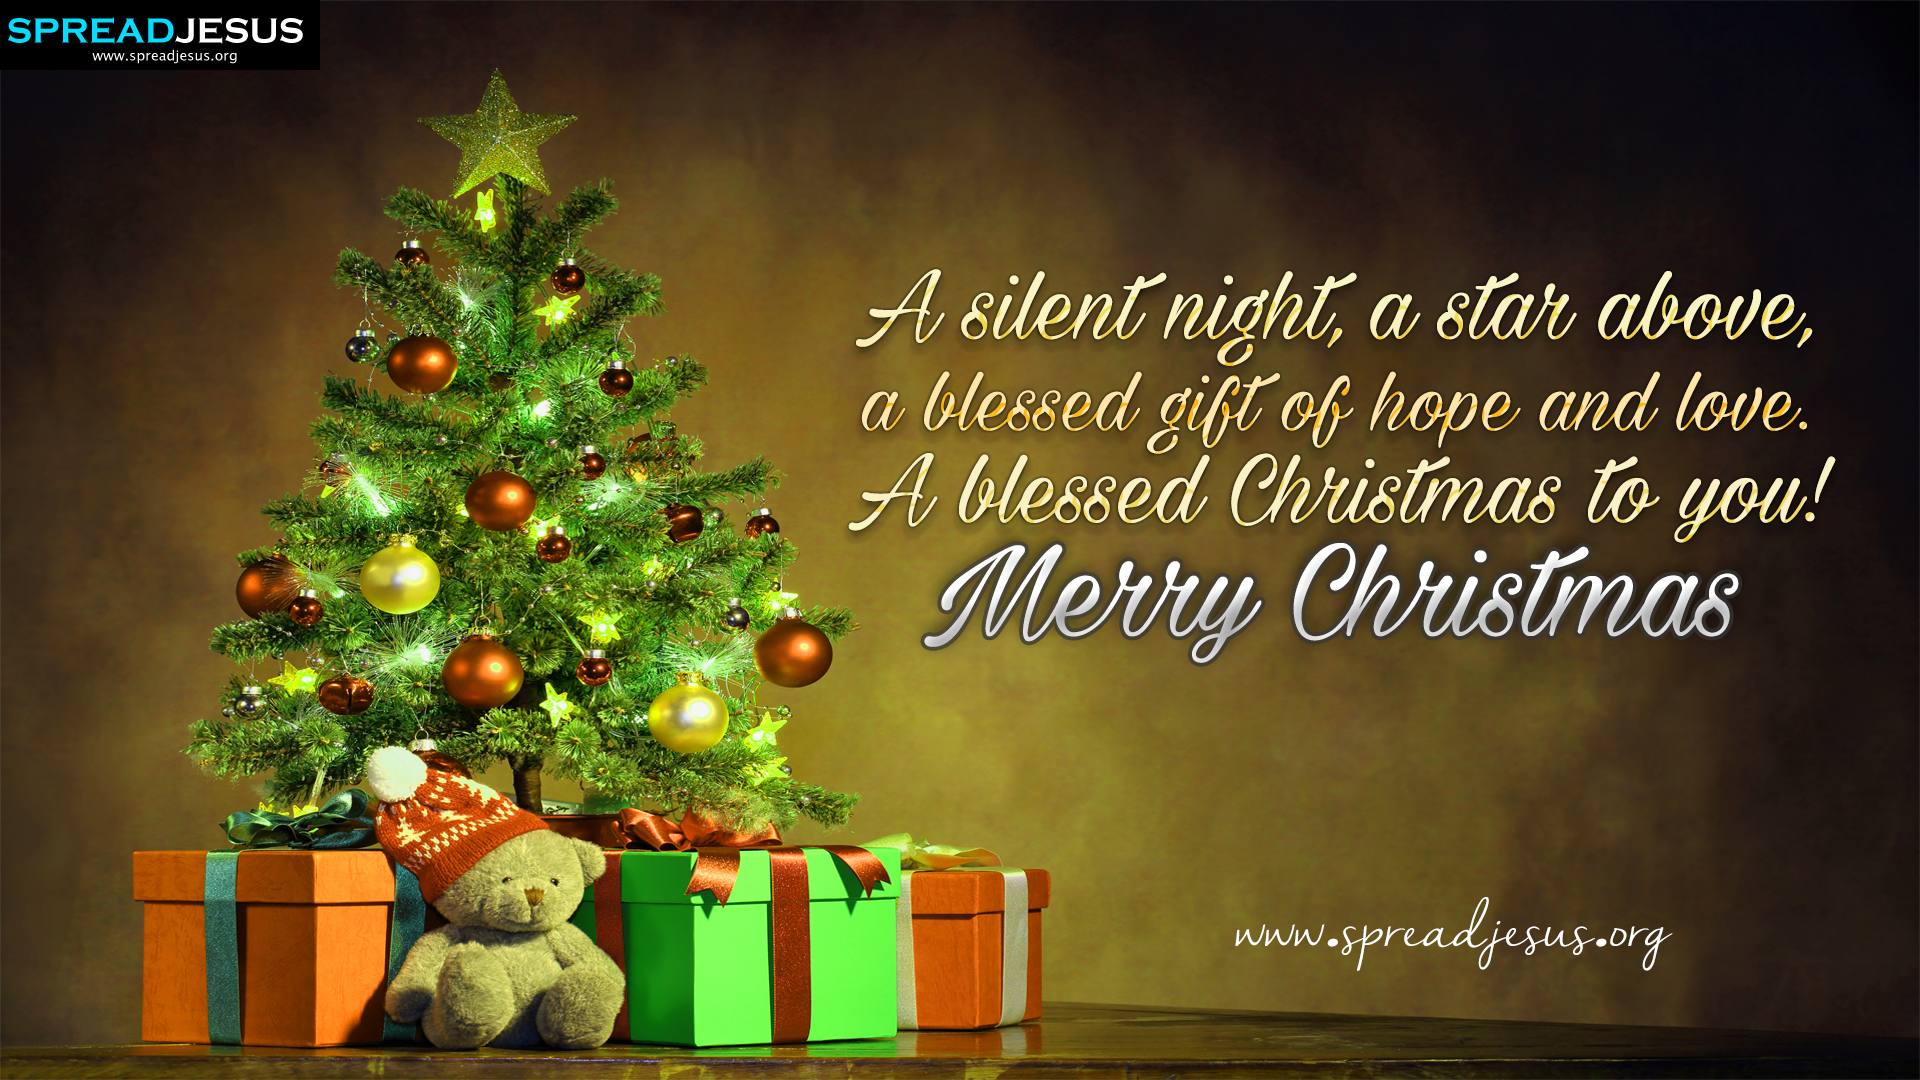 merry christmas hd-wallpapers download, happy christmas wallpaper